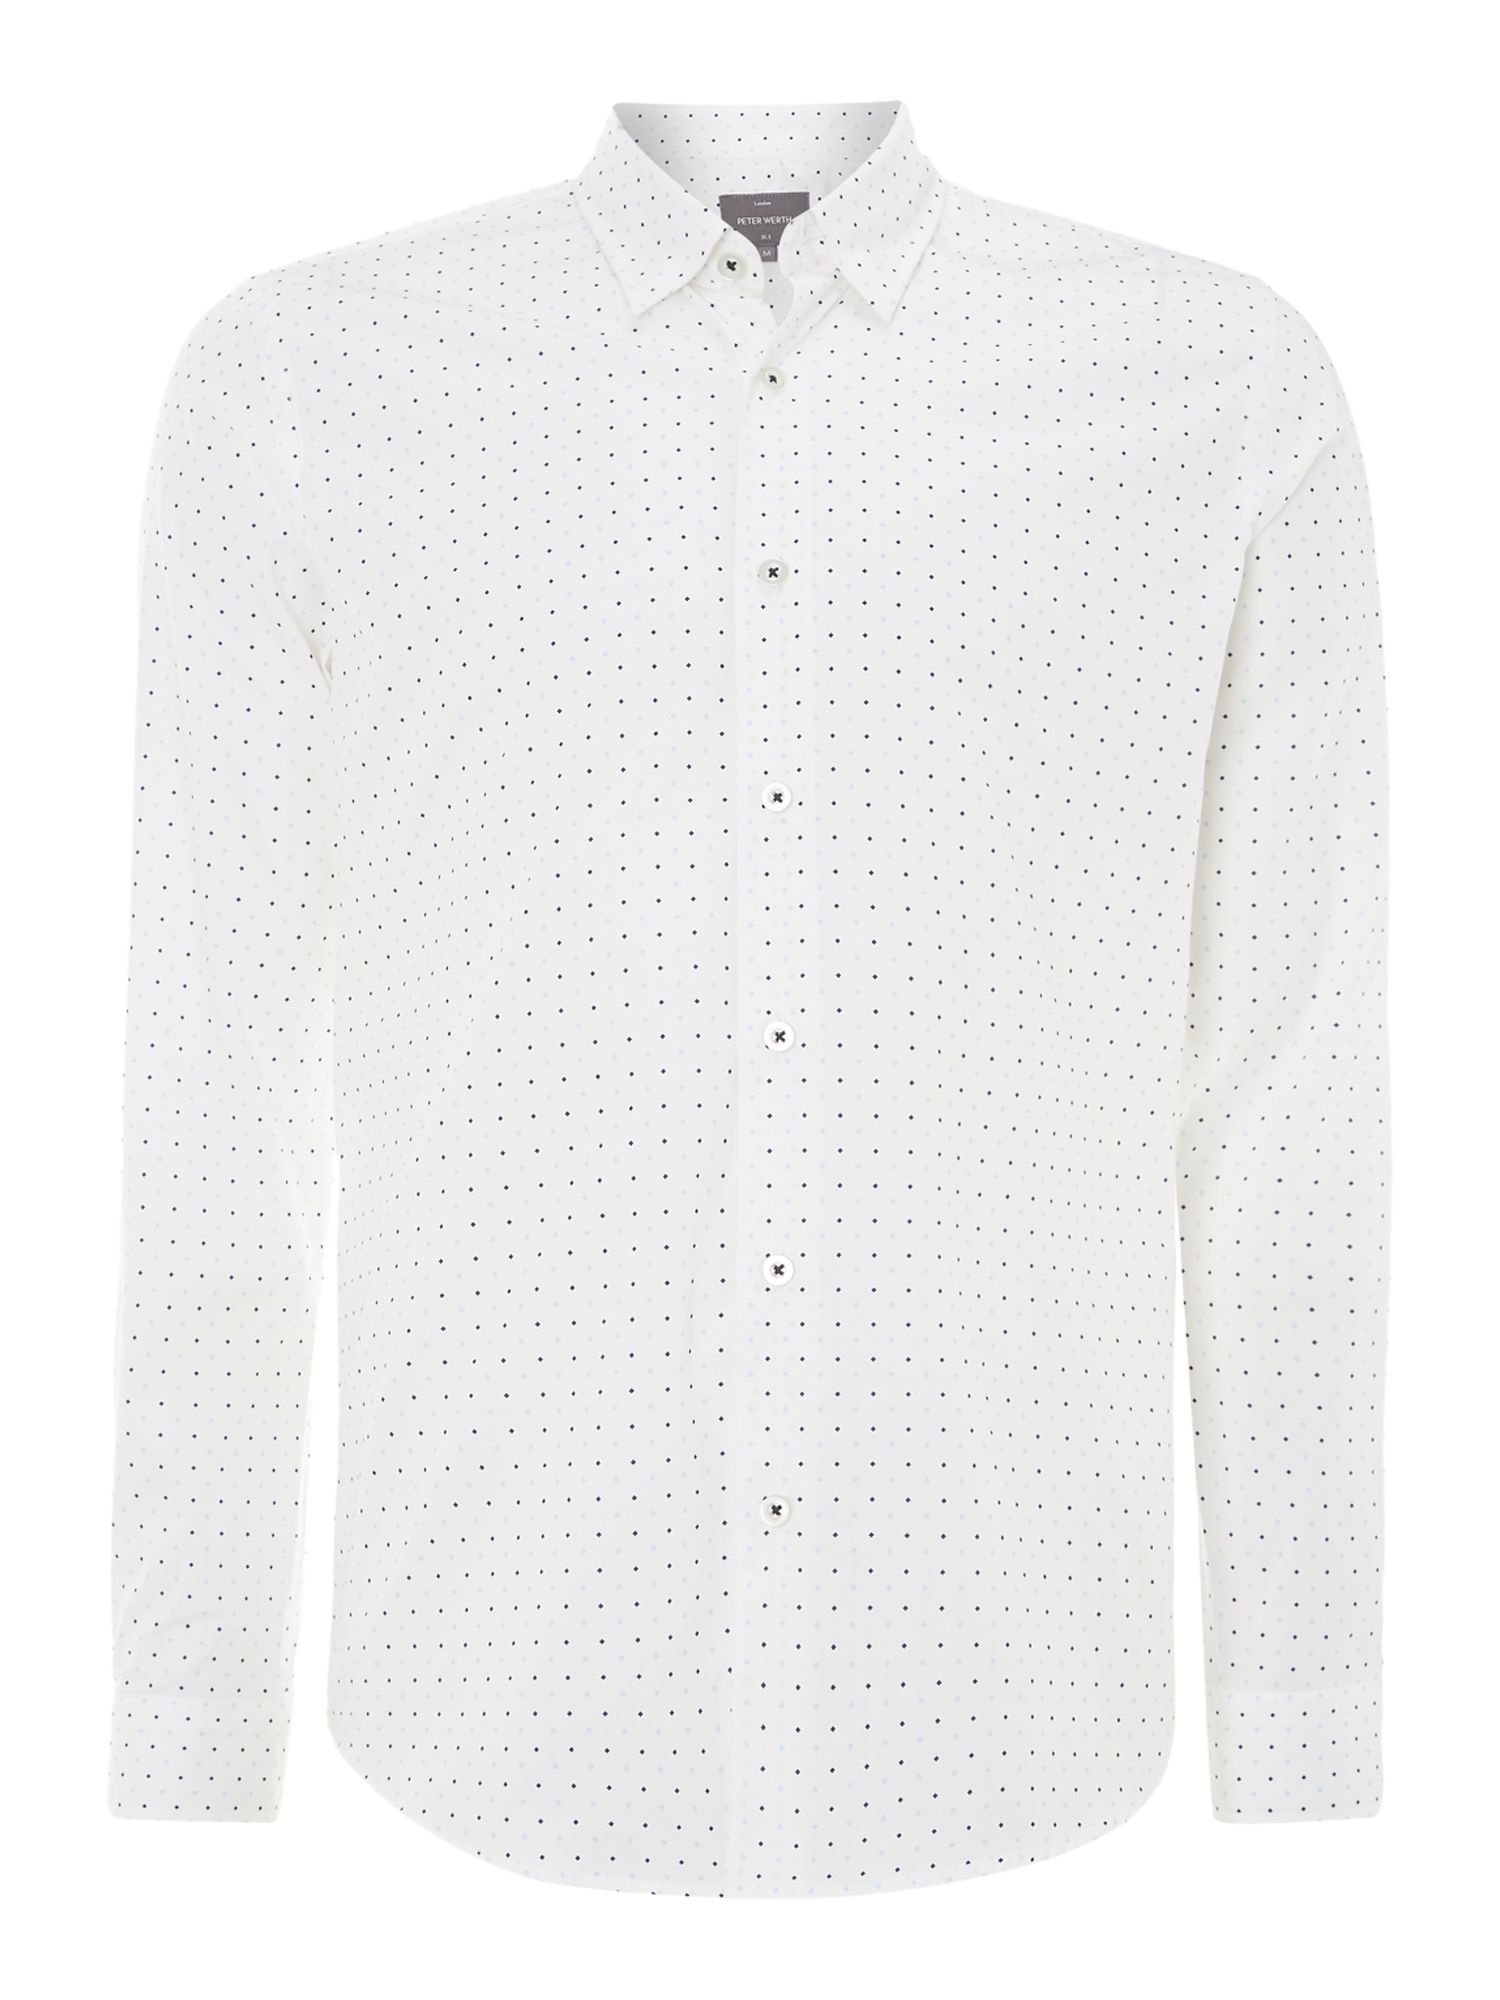 Edom diamond print shirt